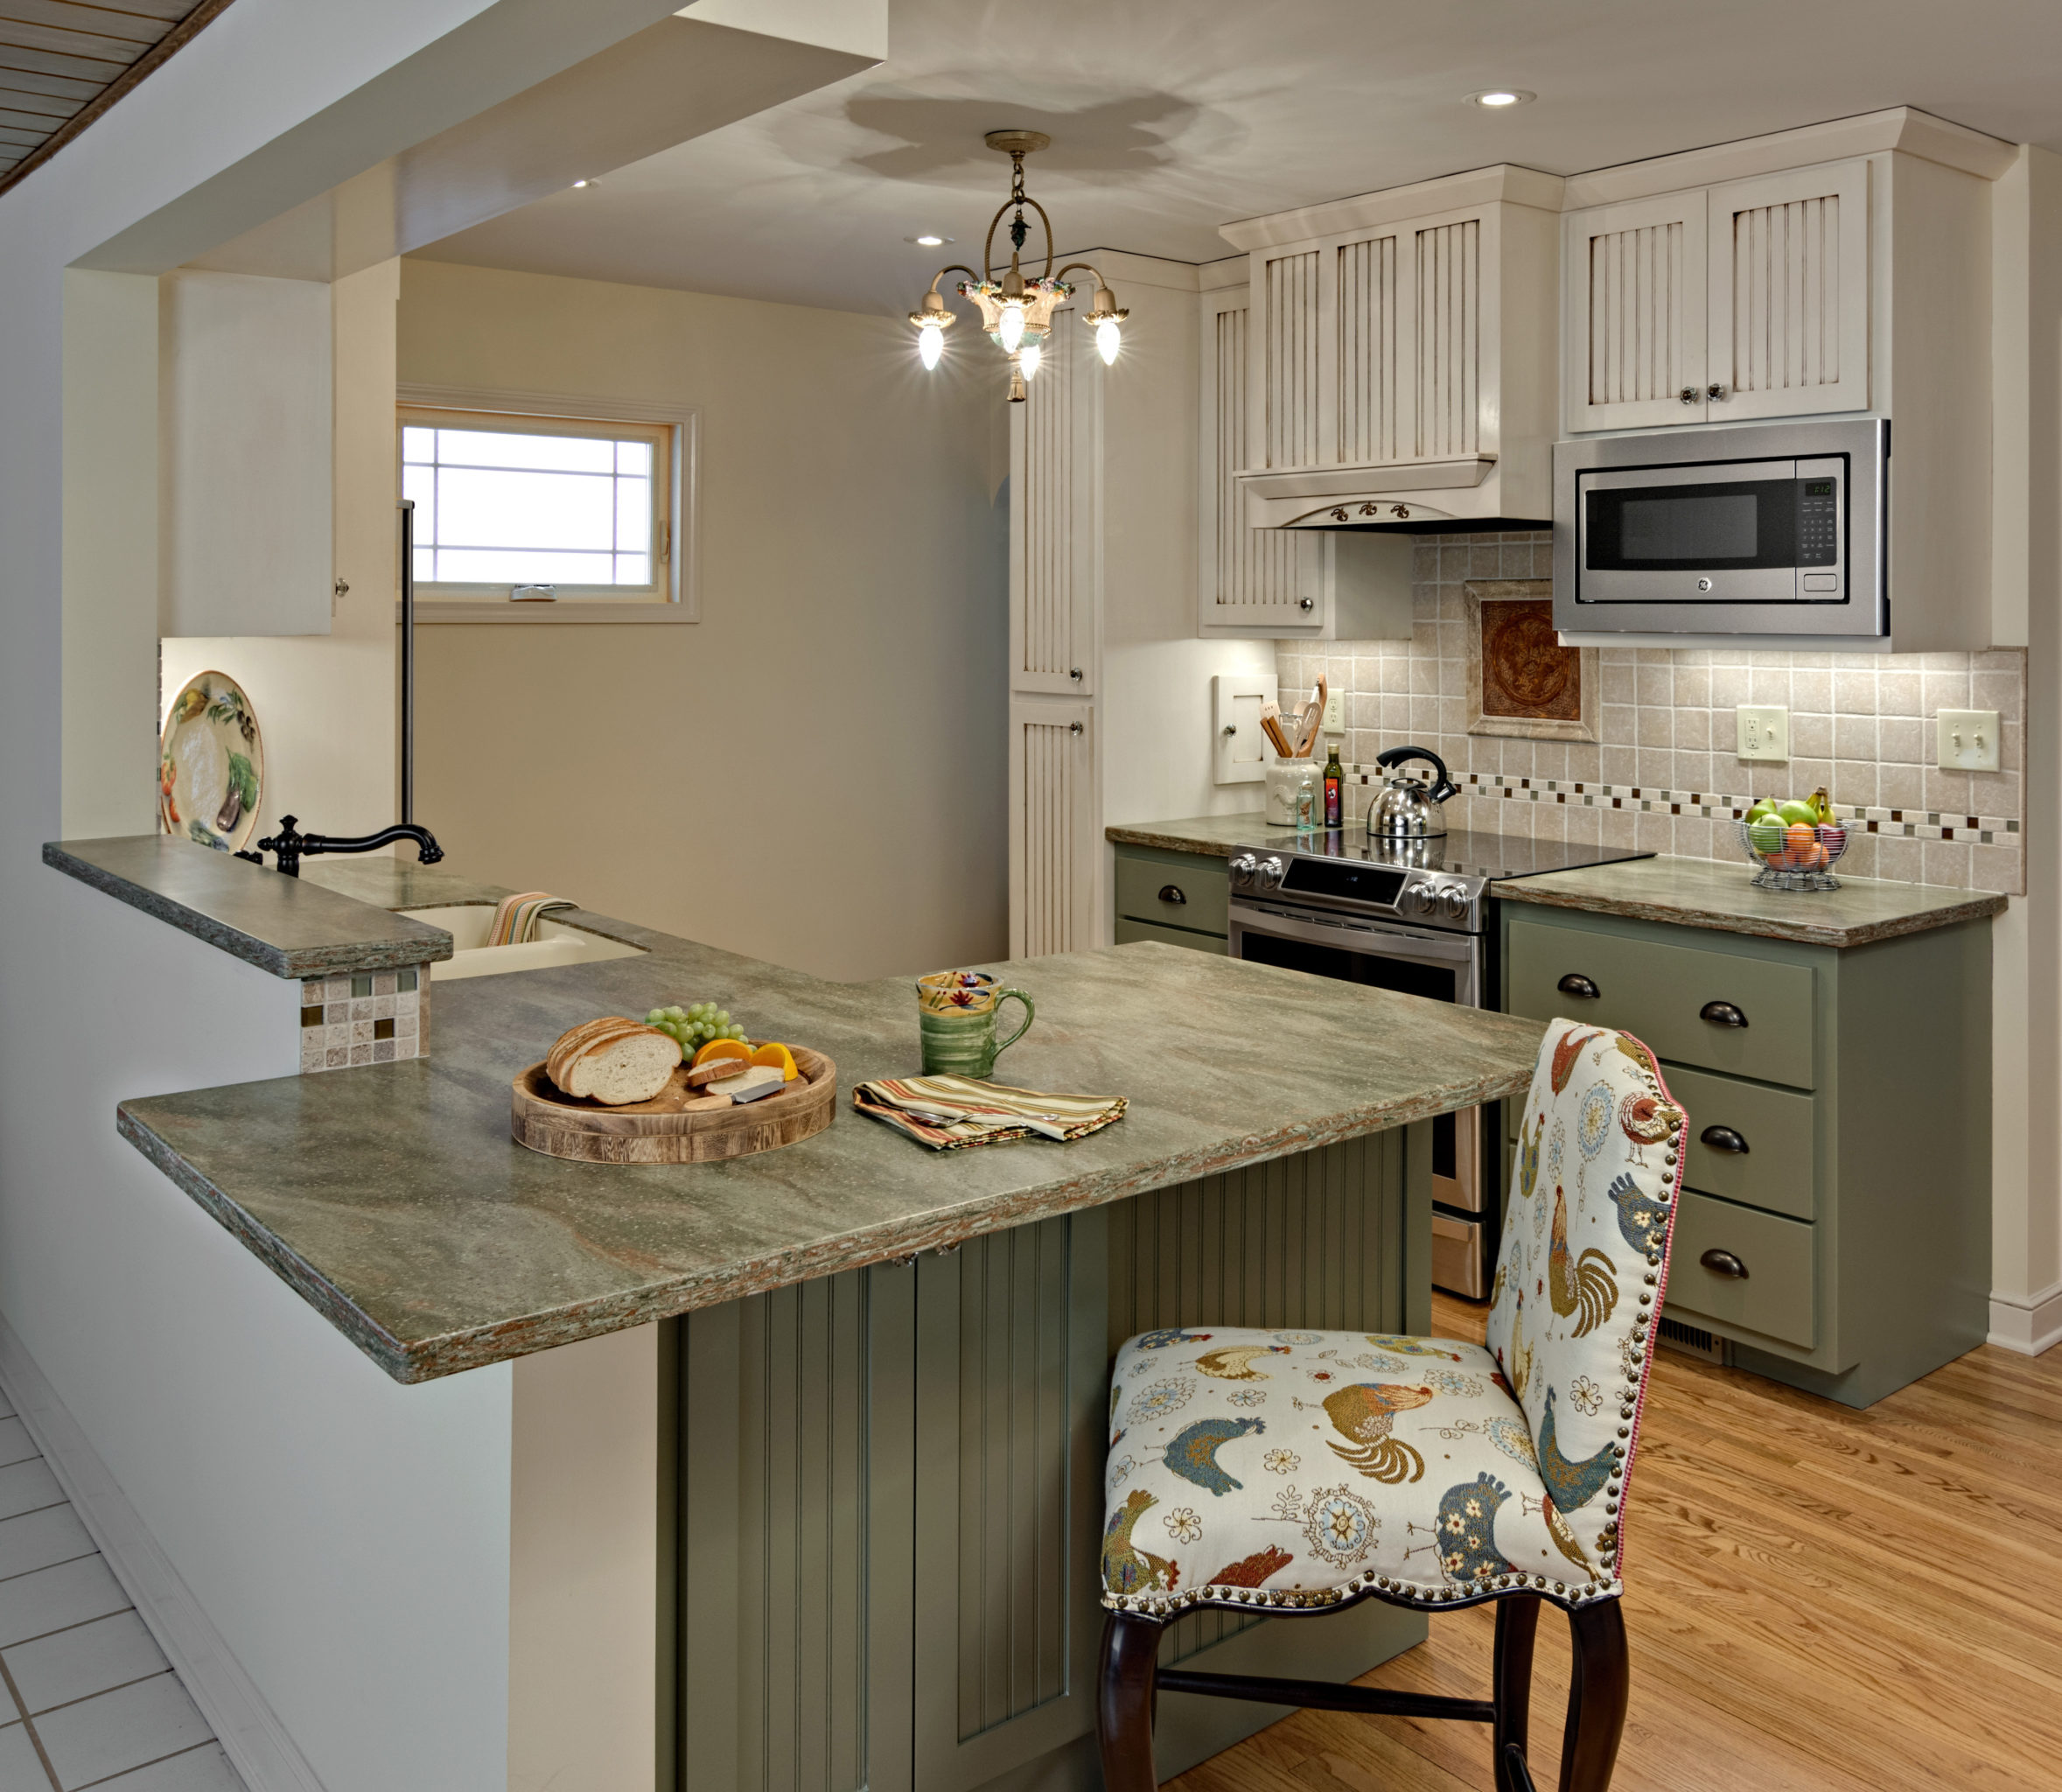 Kitchen Interior Design 2016: A Small St. Paul Kitchen Gains A Gathering Area